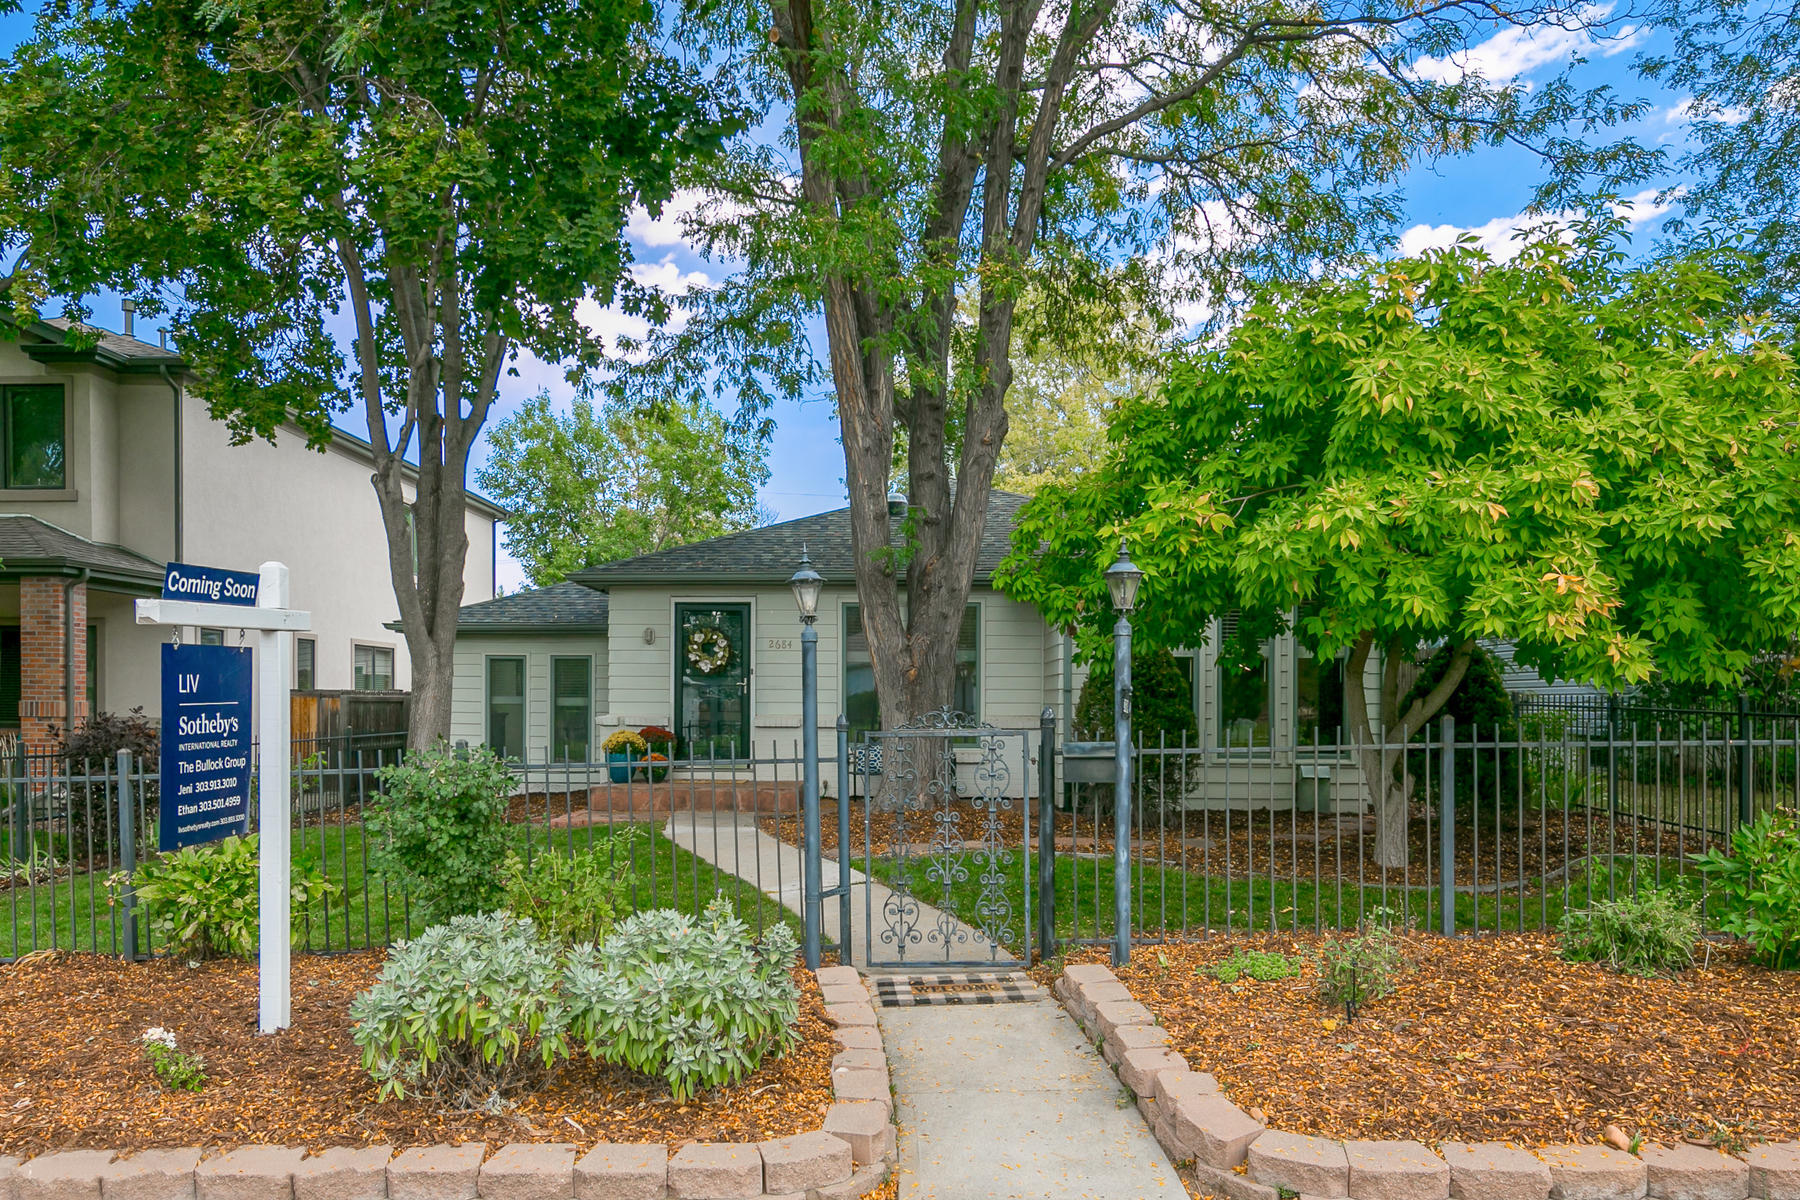 Single Family Home for Active at Traditional Styling Meets Modern Amenities 2684 S Adams St Denver, Colorado 80210 United States